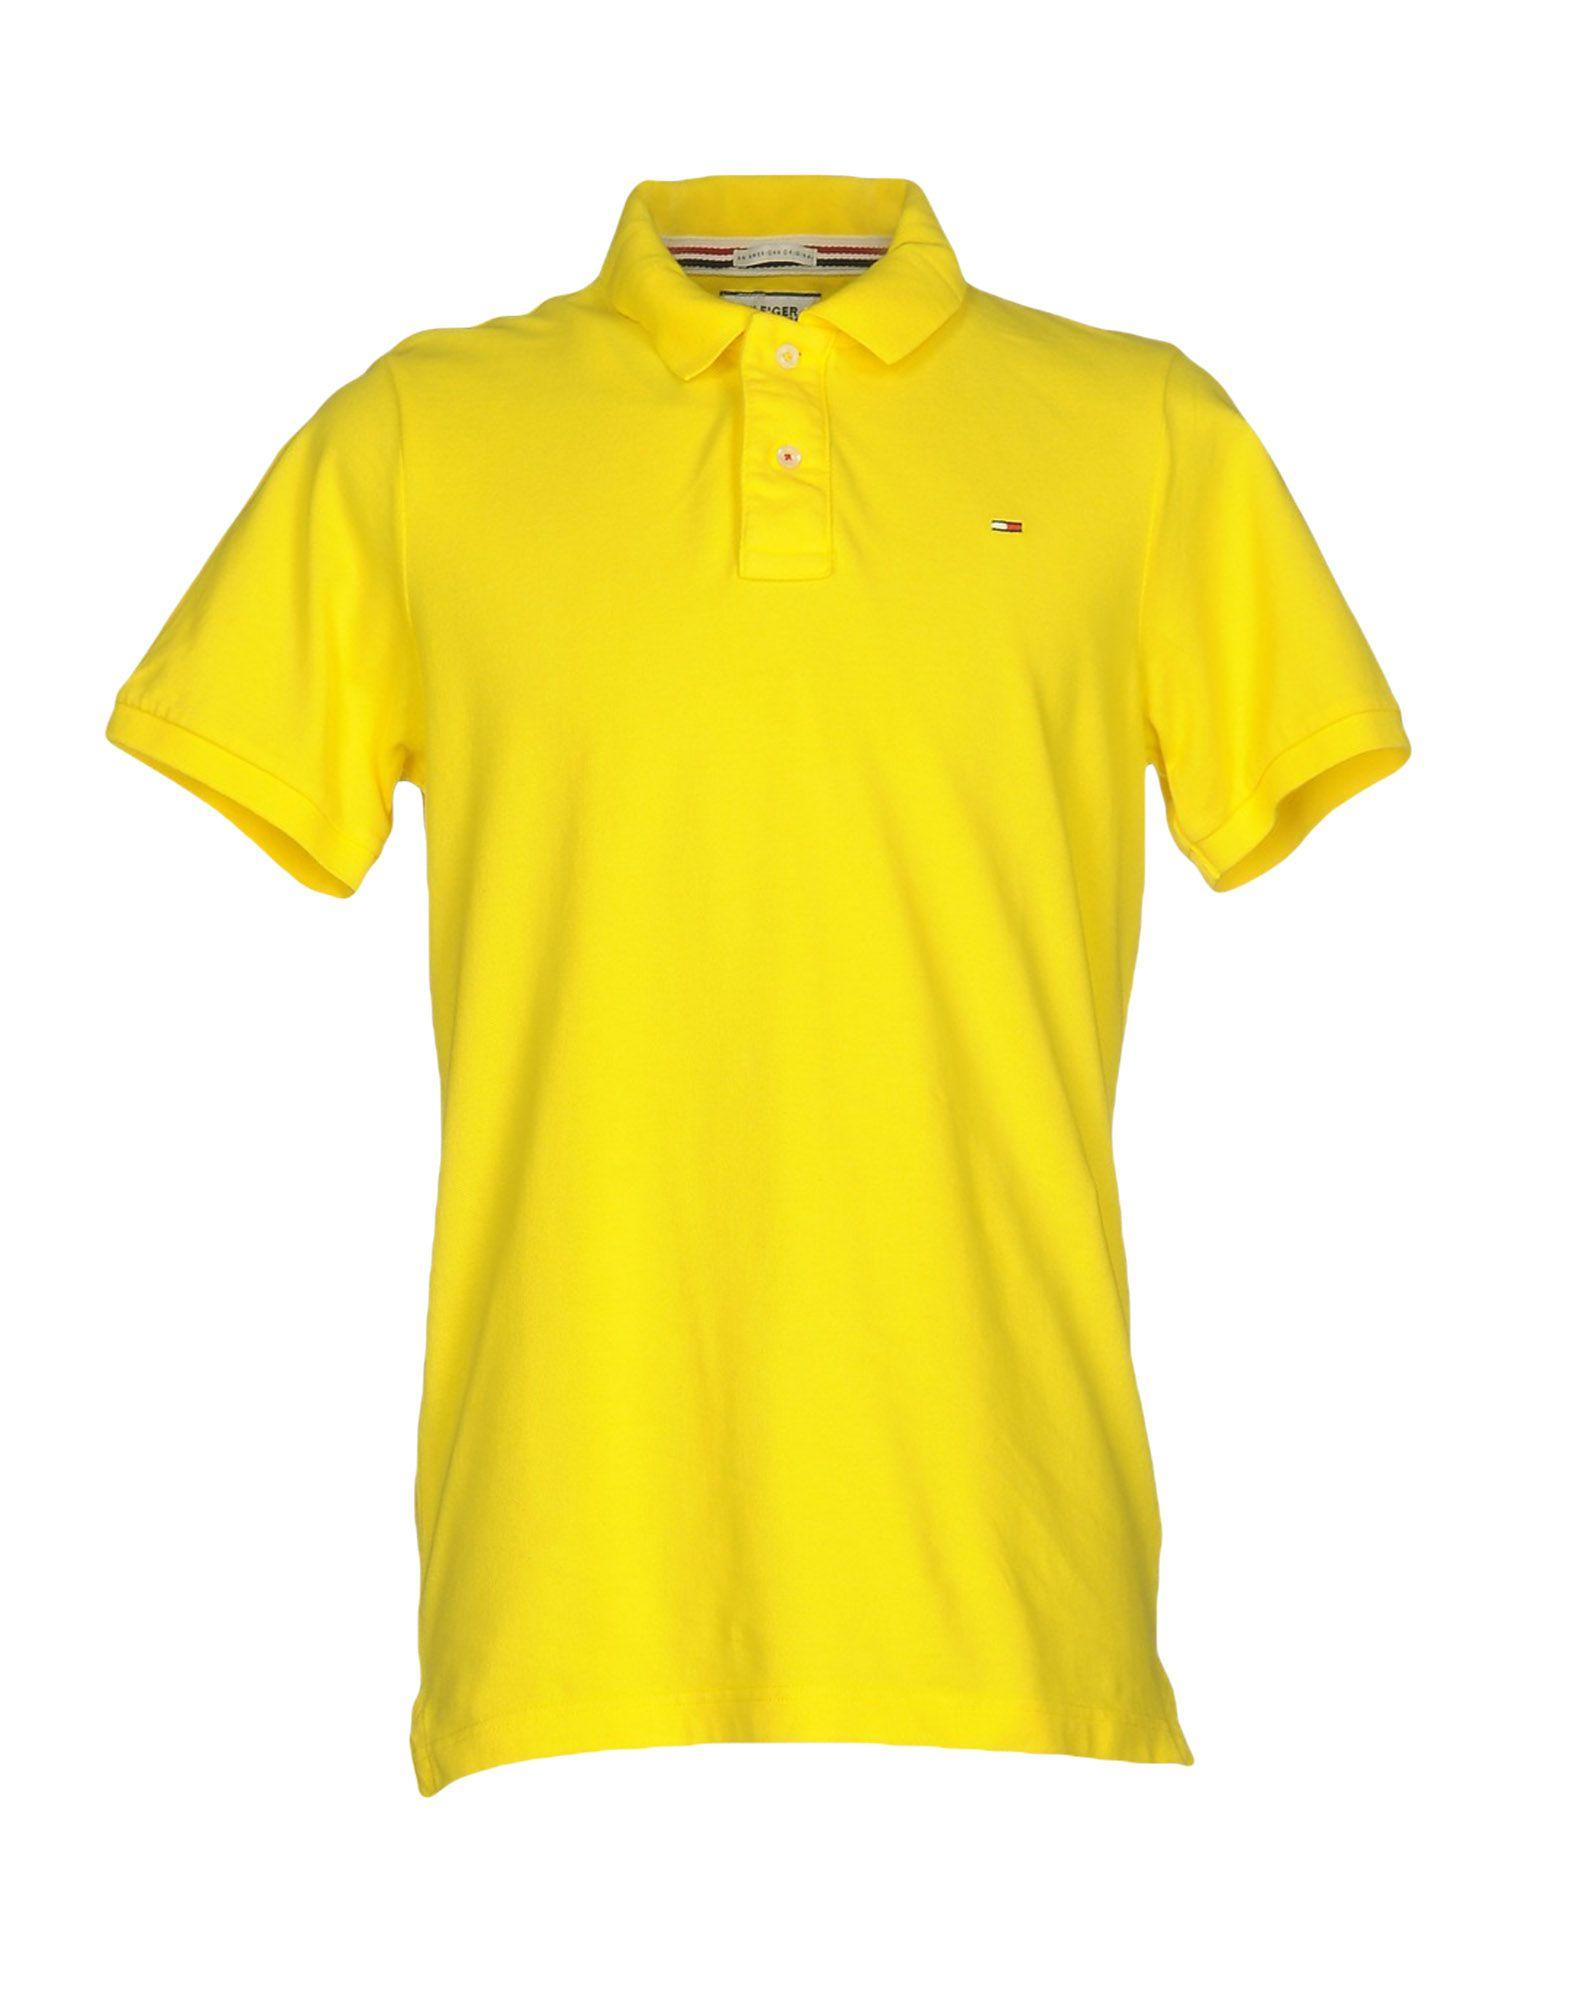 Hilfiger Denim Polo Shirt In Yellow For Men Lyst